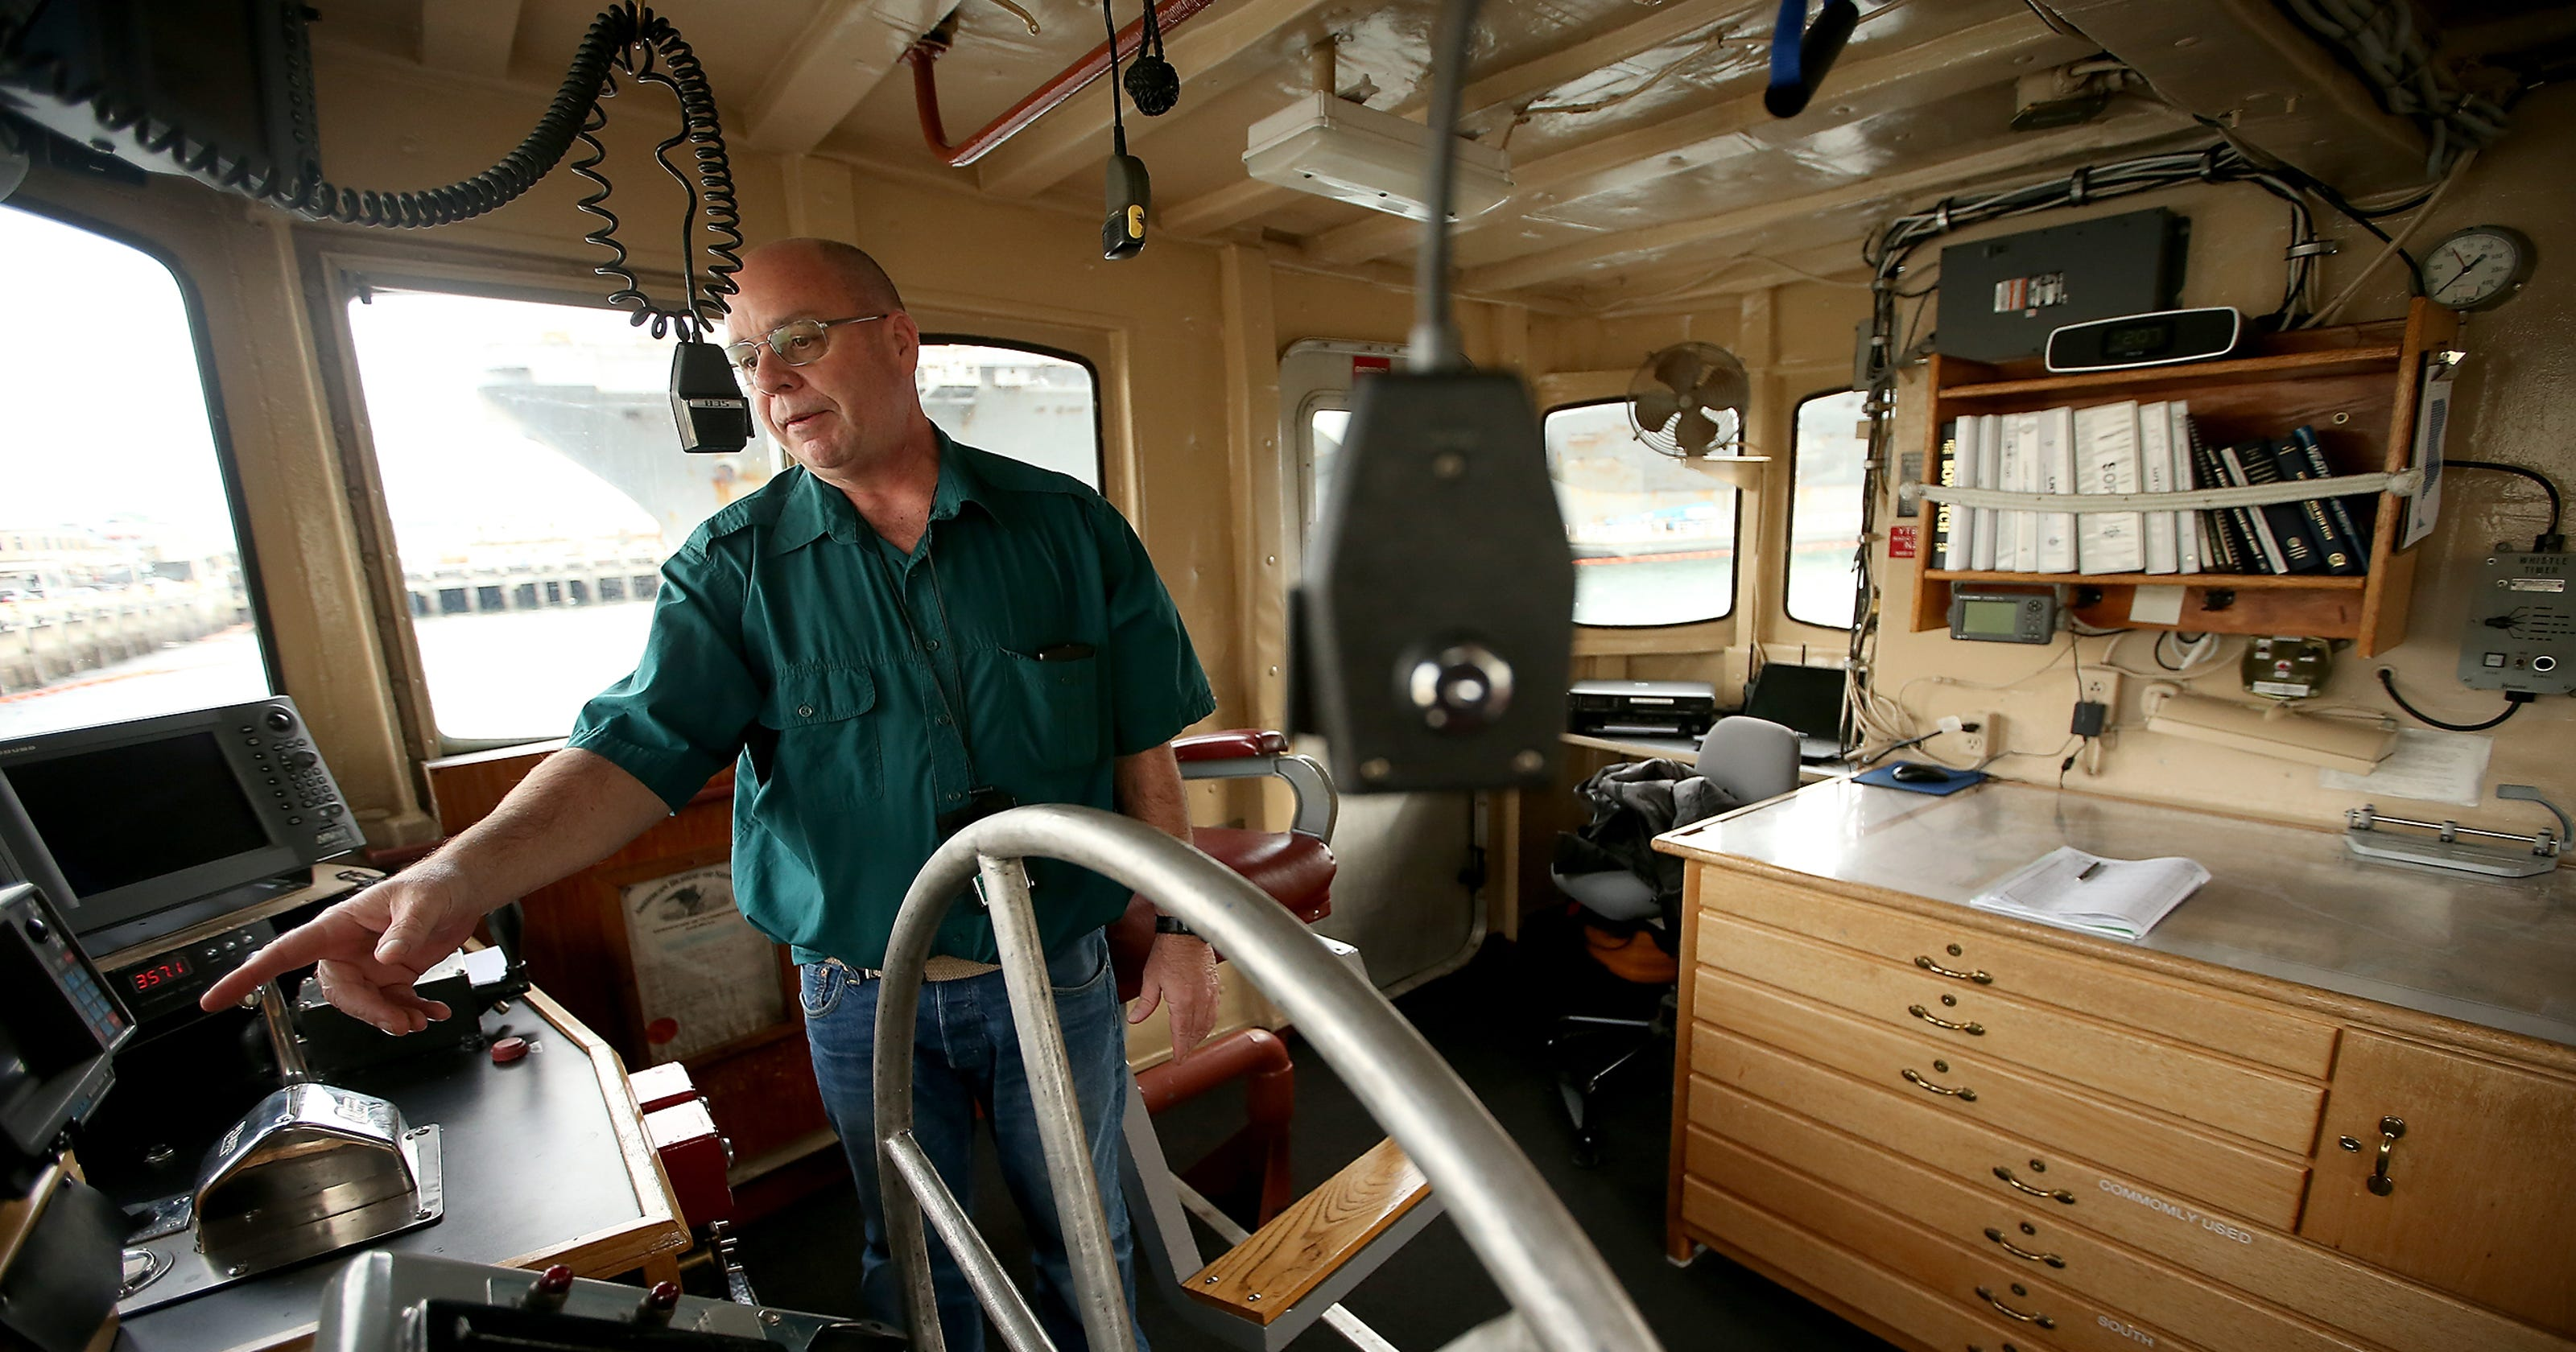 Navy seeks to replace aging Northwest tugs